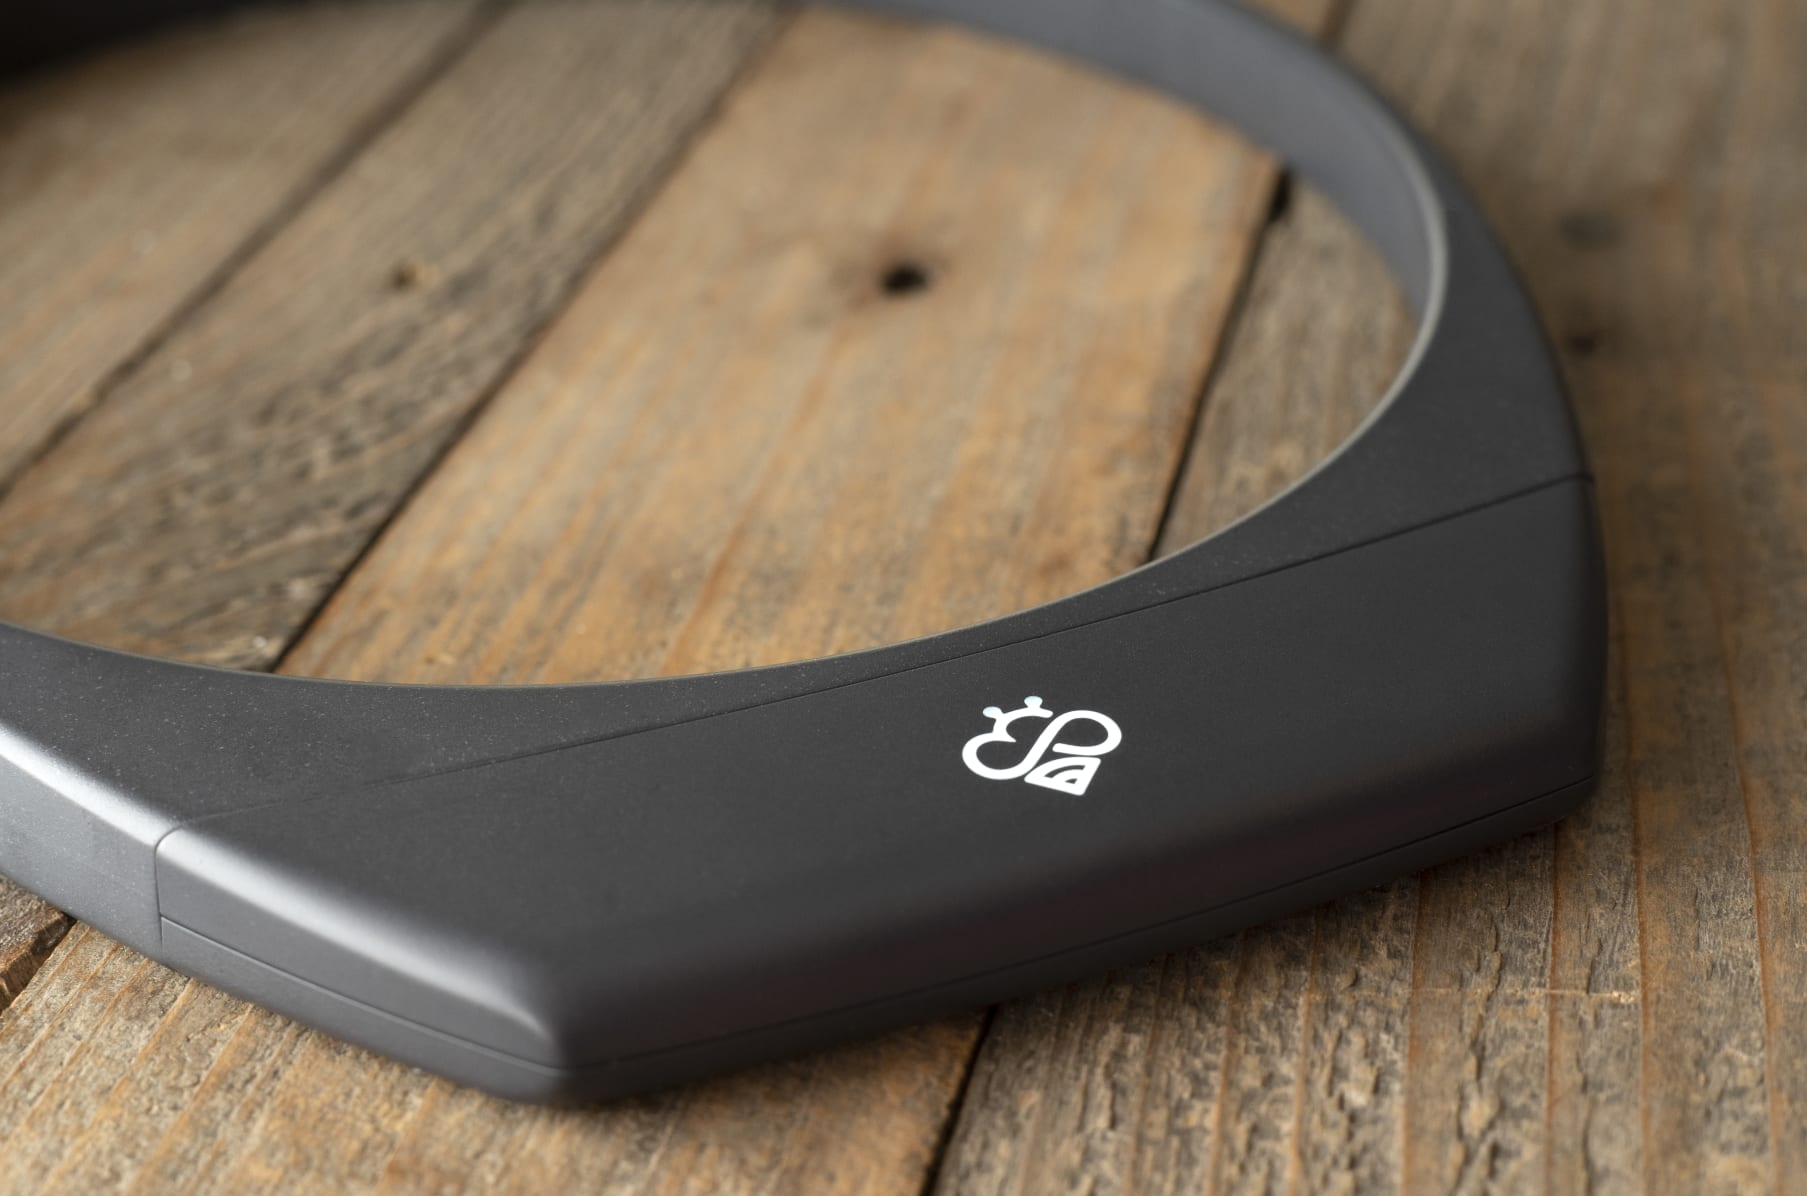 Hapbee, The Mood-Enhancing Wearable Device